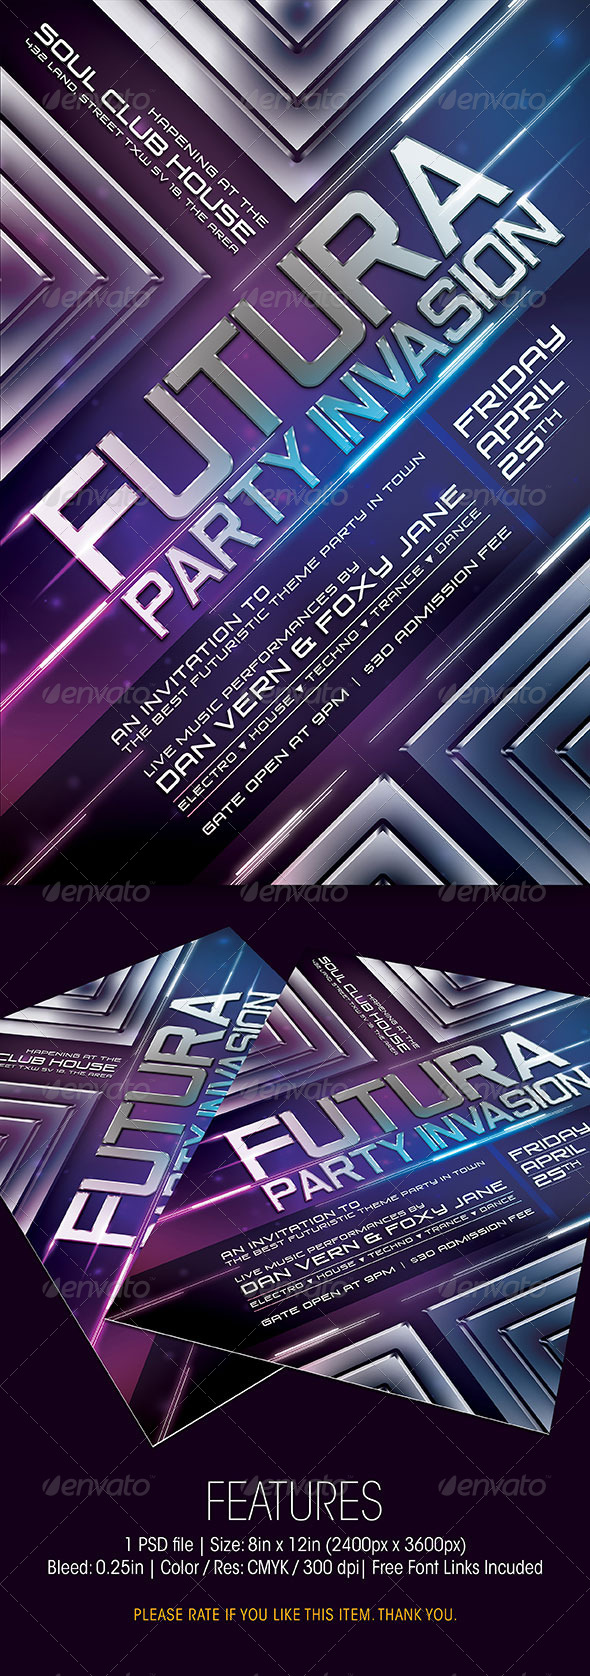 GraphicRiver Futura Party Invasion 6434606